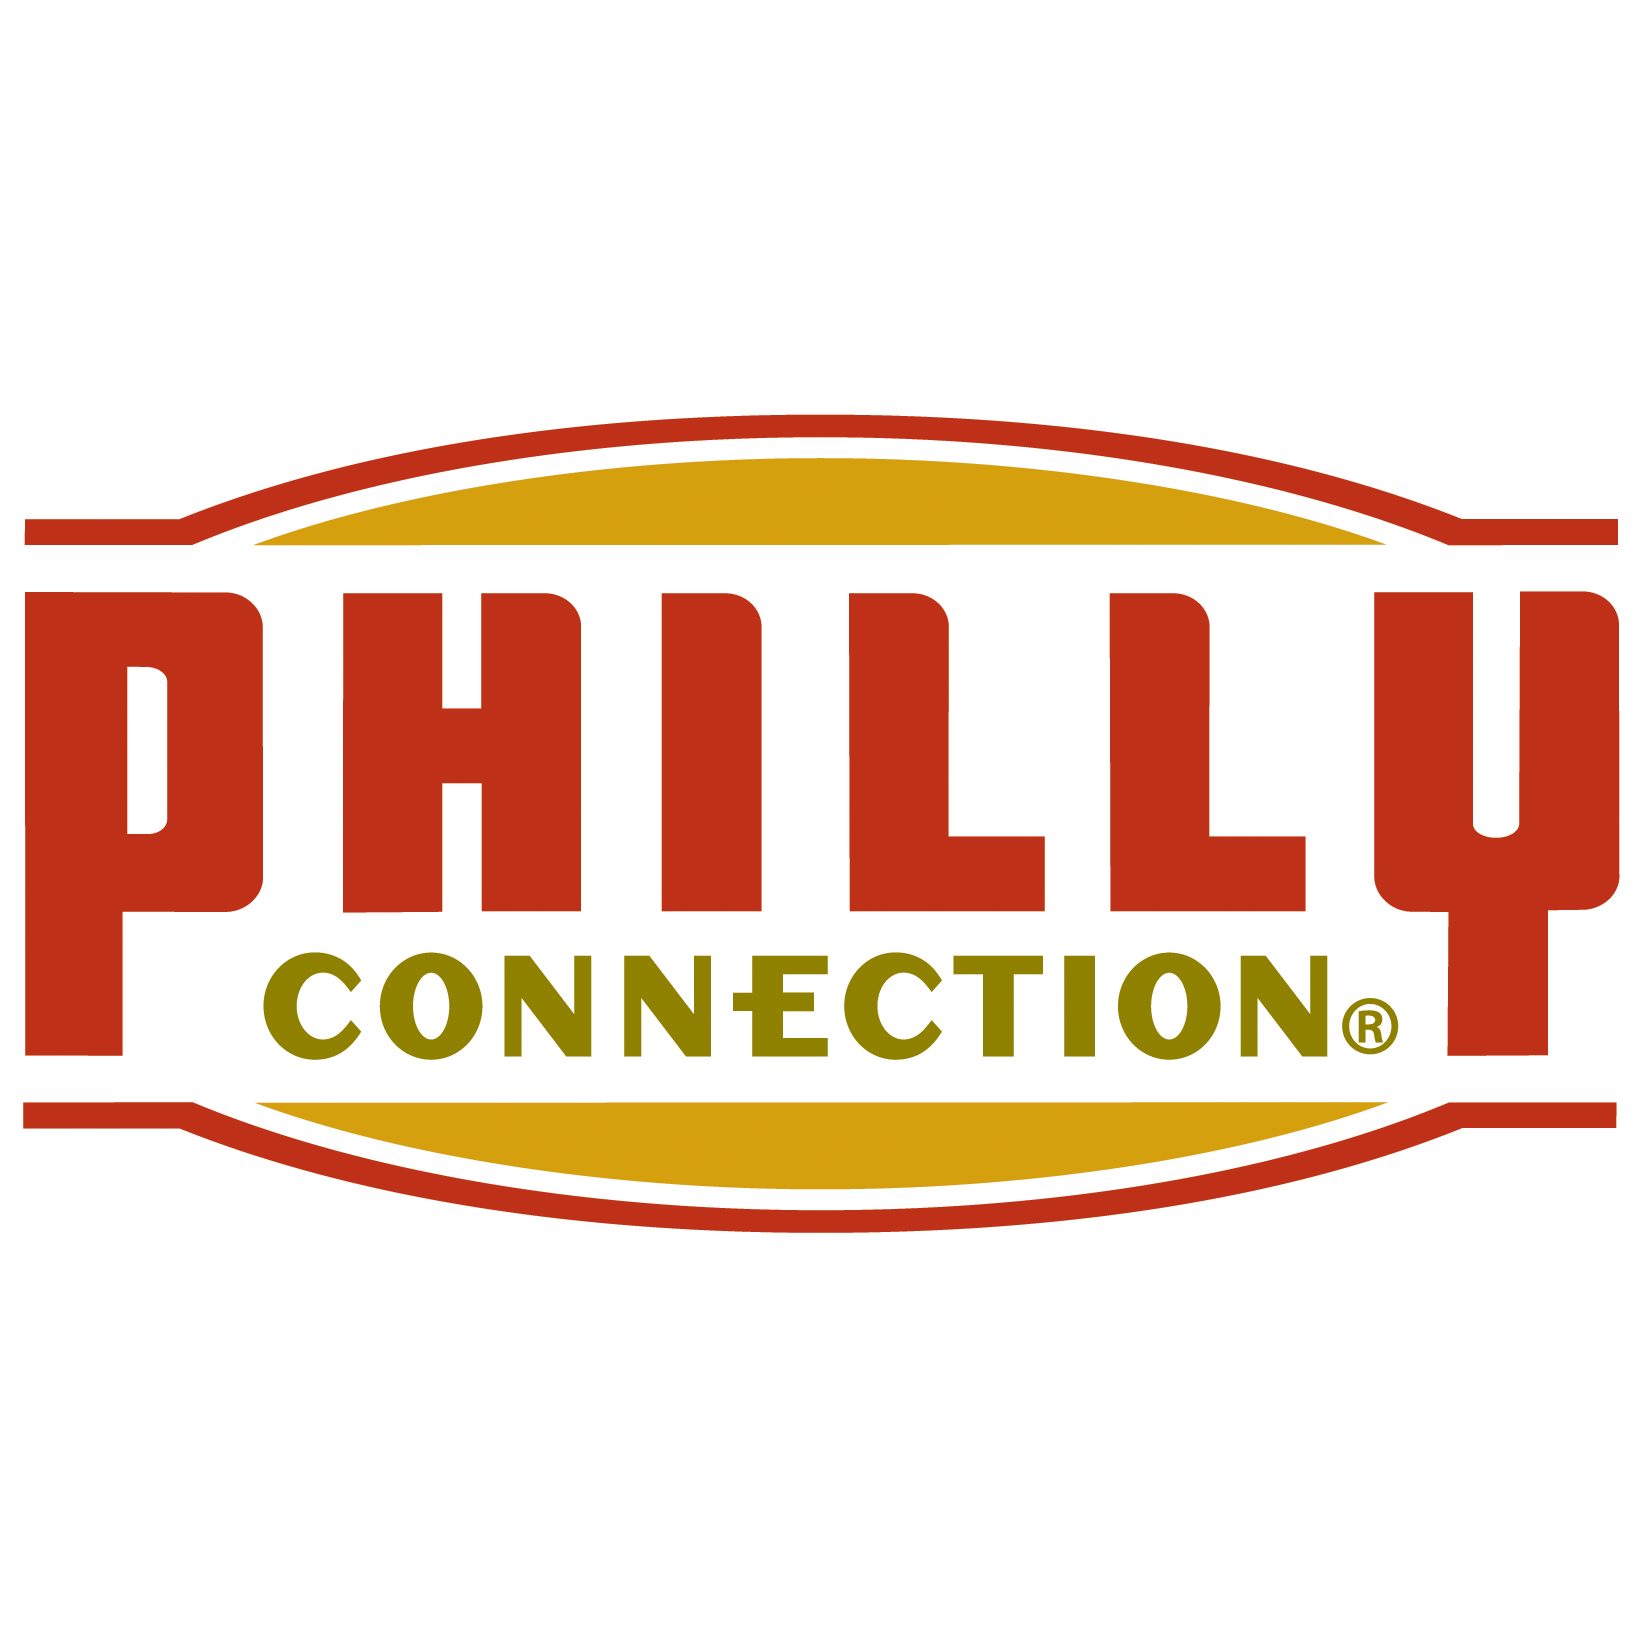 Philly Connection (KSU)